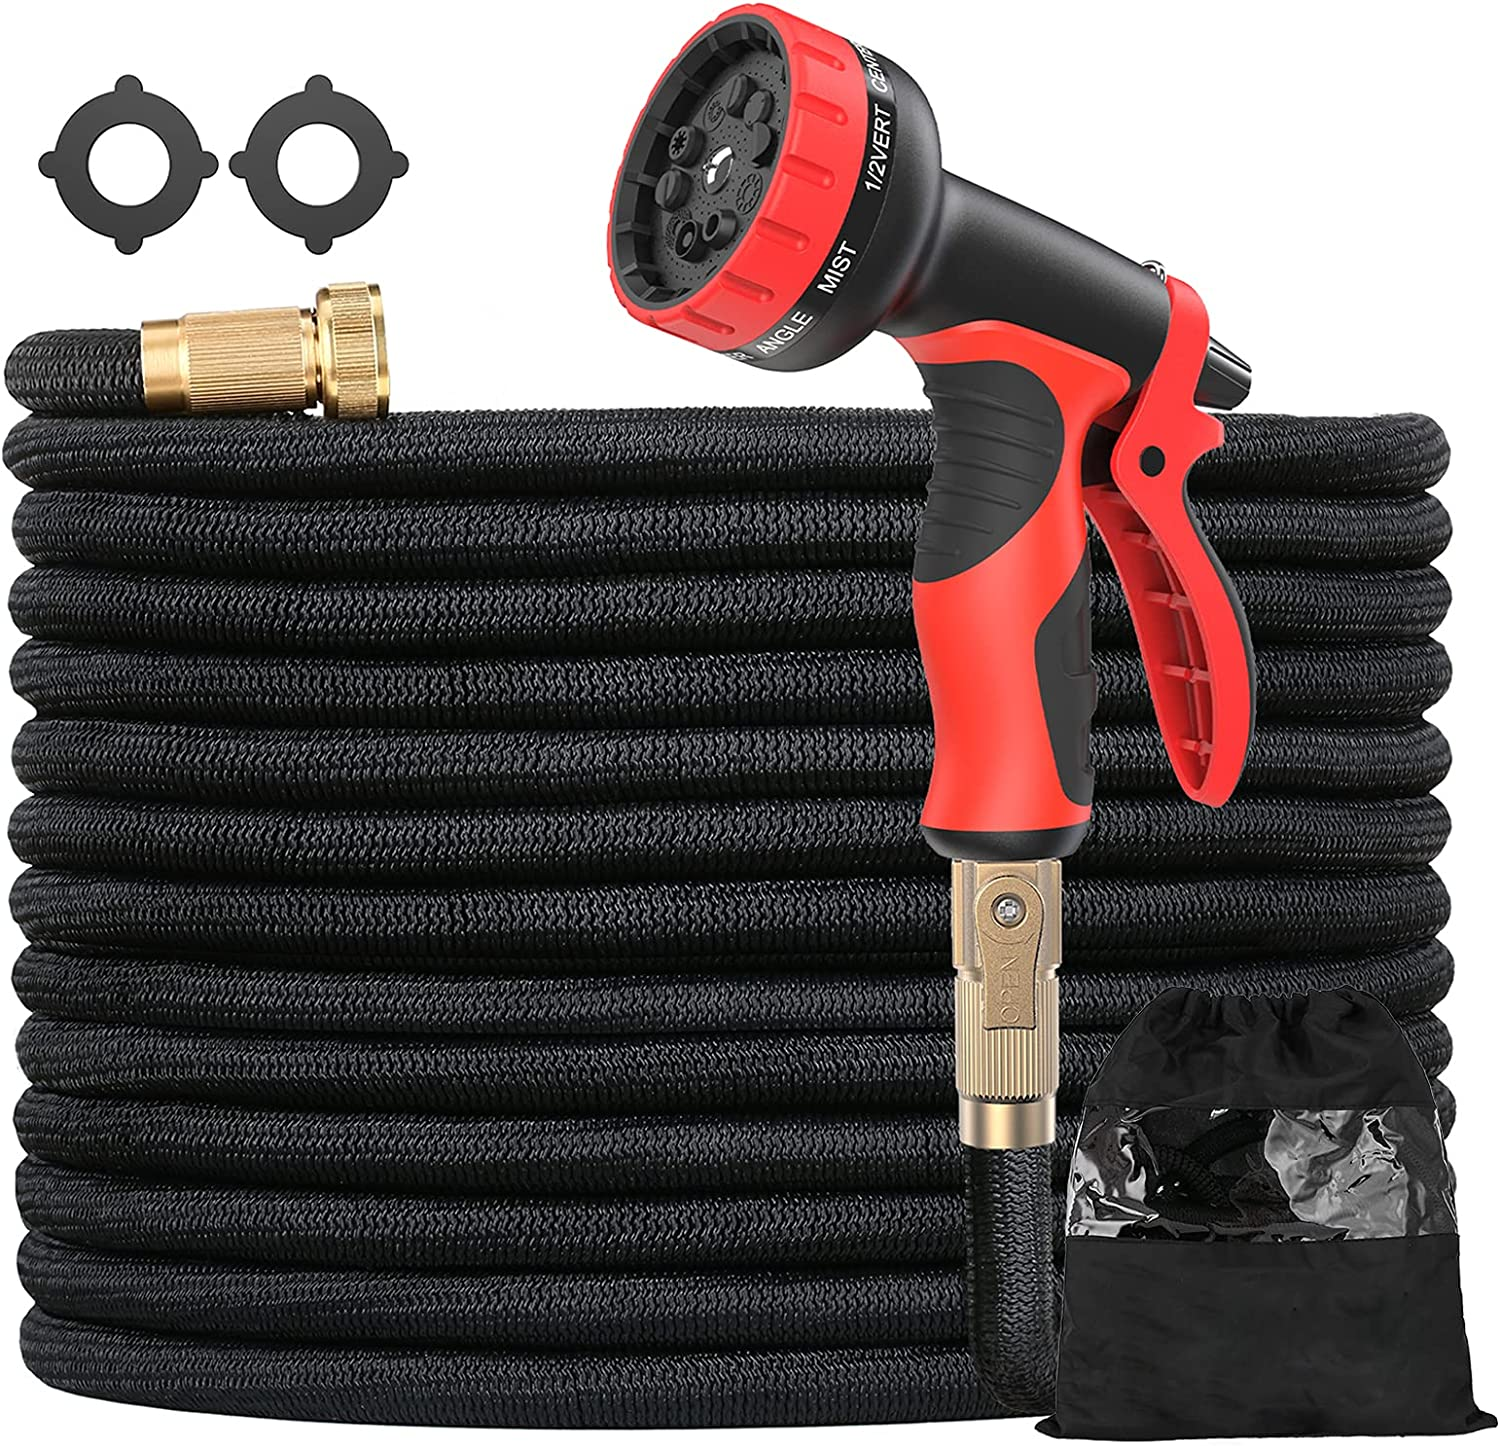 Expandable Garden Hose 50ft Water Hose with 10 Function Nozzle No-Kink Lightweight Flexible Hose Durable 3-Layers Latex with 3/4 Inch Solid Brass Fittings for Watering & Washing